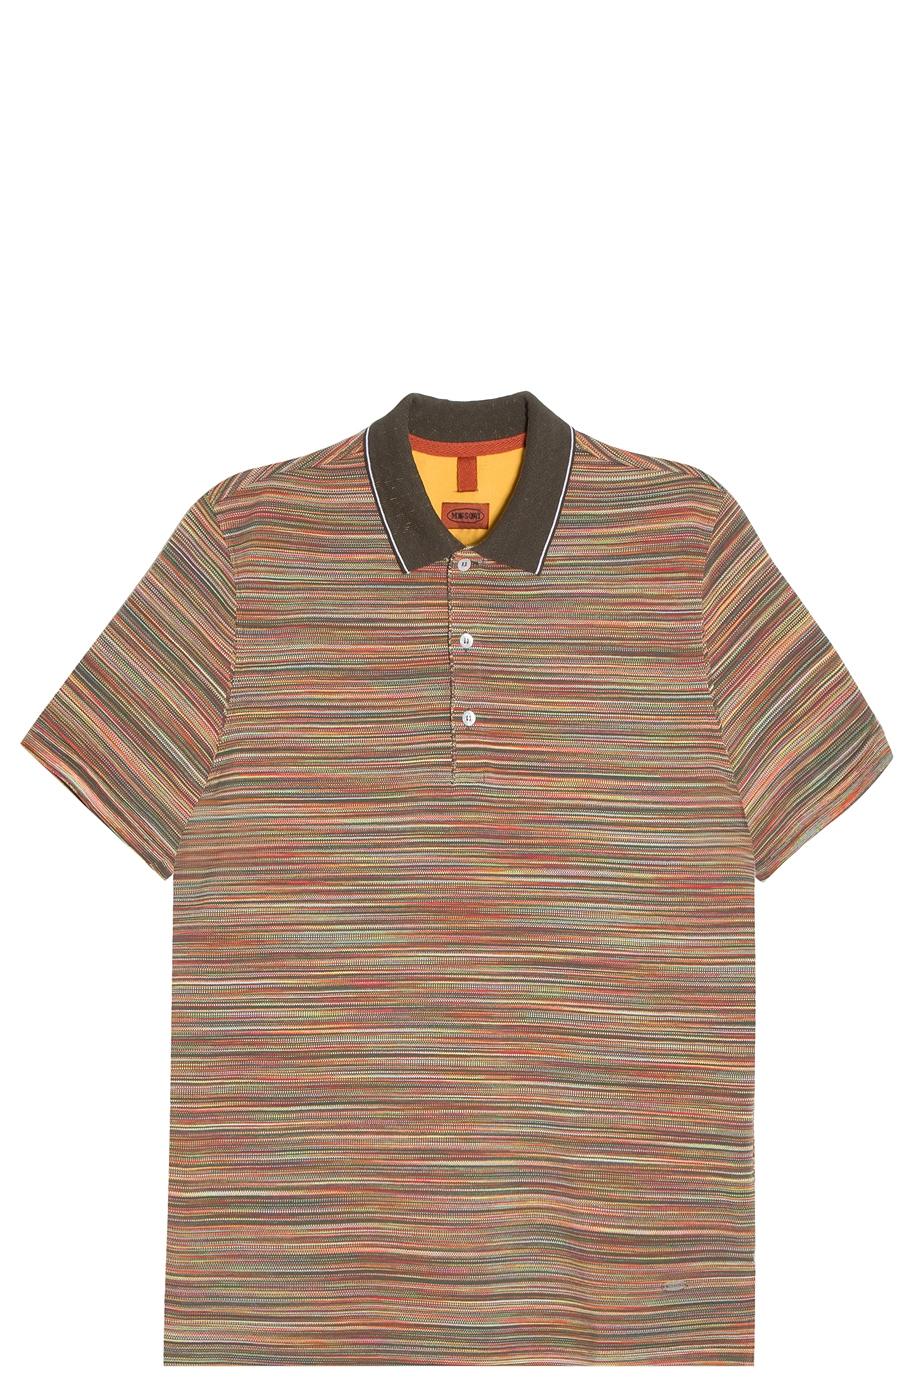 Missoni Striped Polo T-shirt in Khaki for Men | Lyst